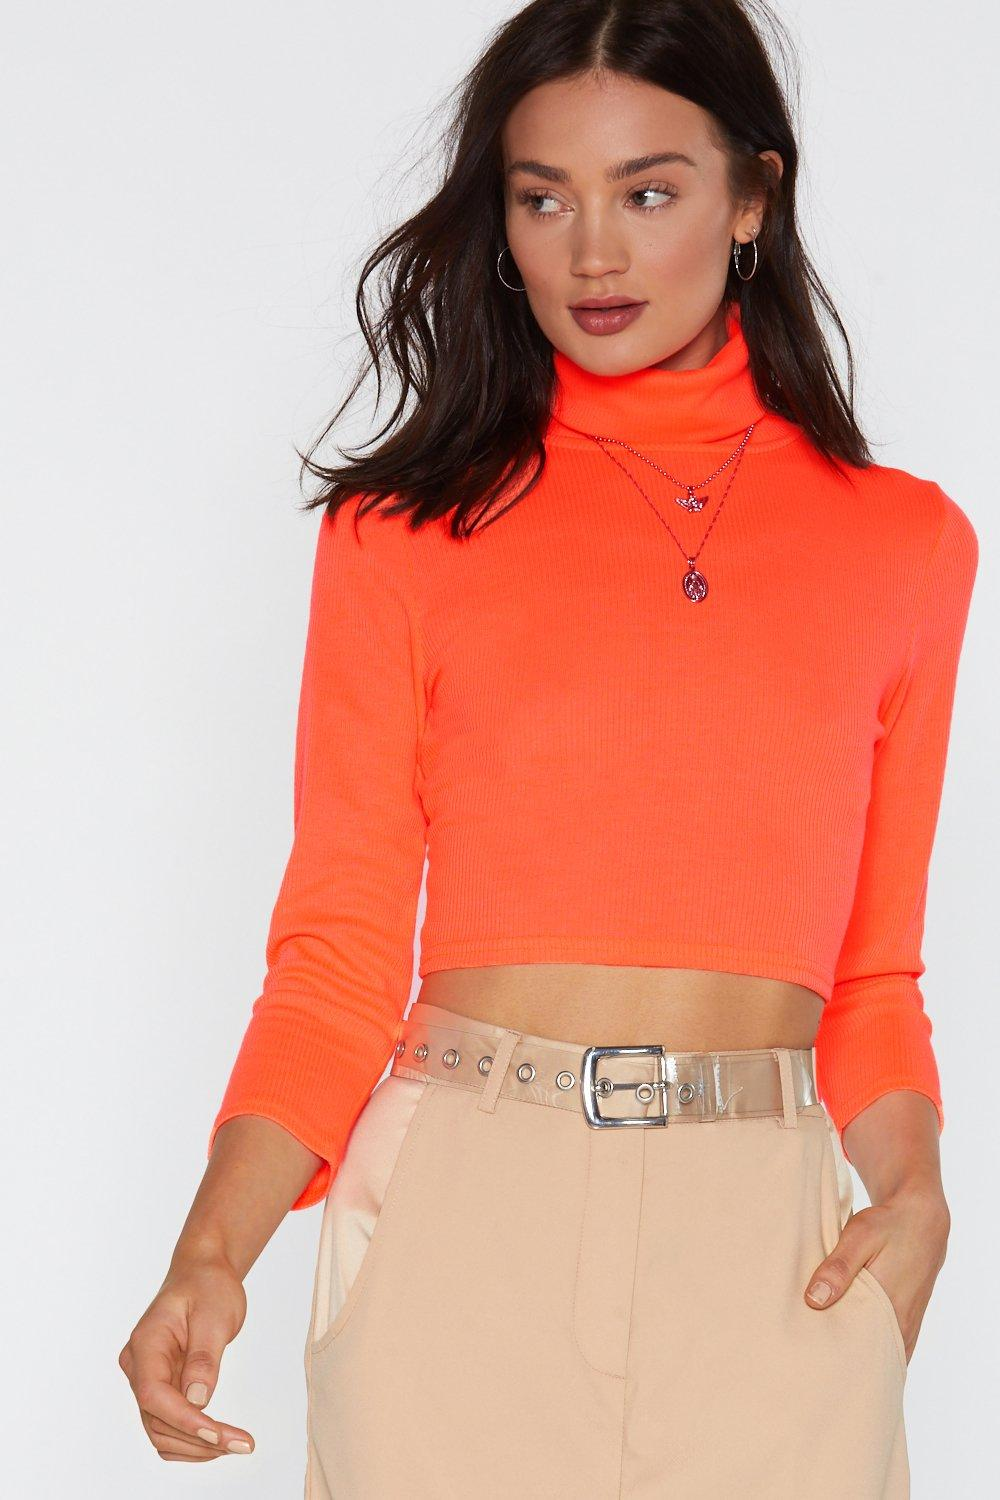 a1ffbefd0 Neon the Tequila Turtleneck Crop Top | Shop Clothes at Nasty Gal!